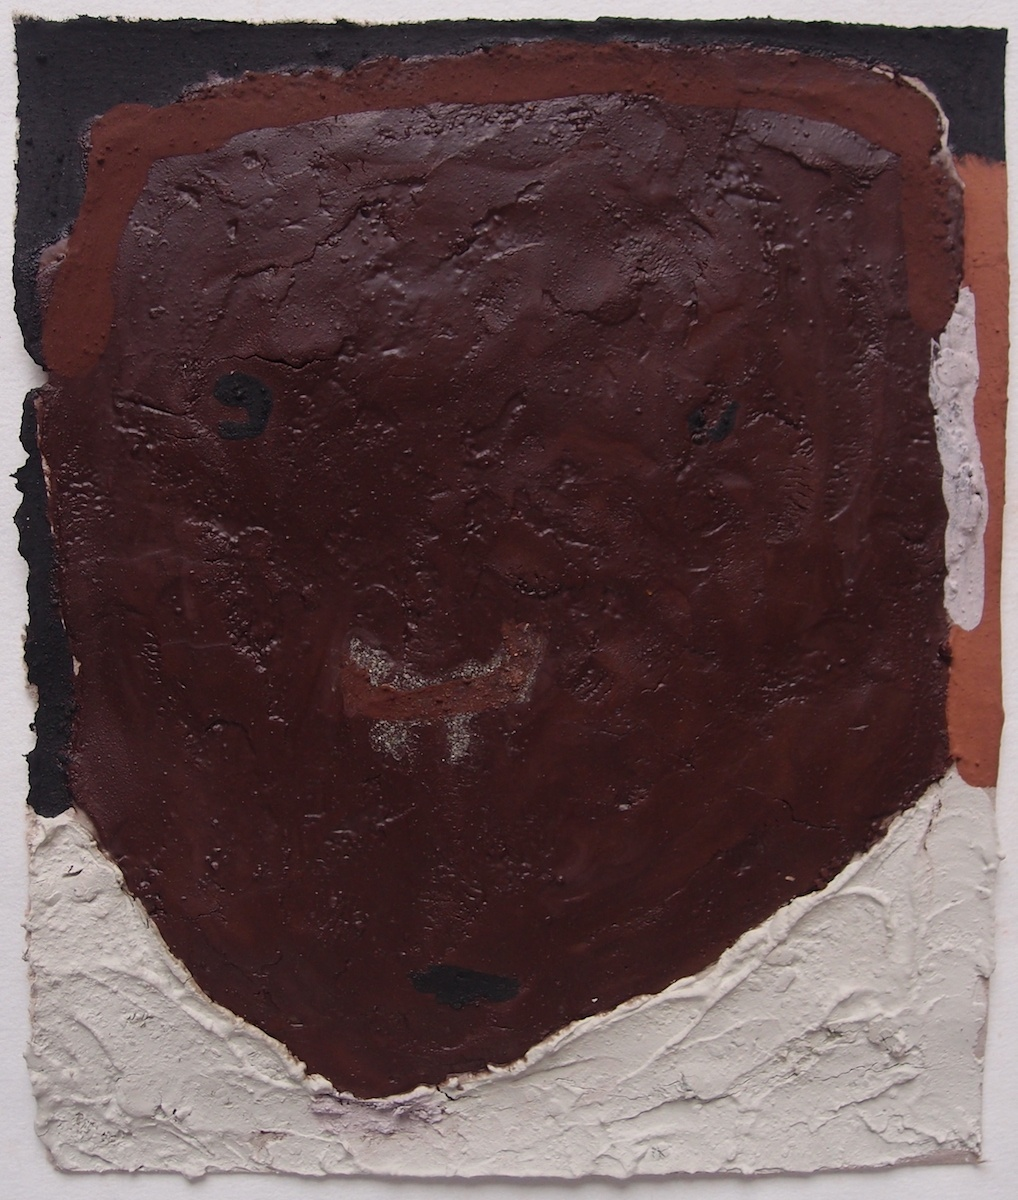 faces of stone - personal responses to a climate emergency IV (Cornish earth pigments on salvaged card; 20x24cm) © p ward 2020